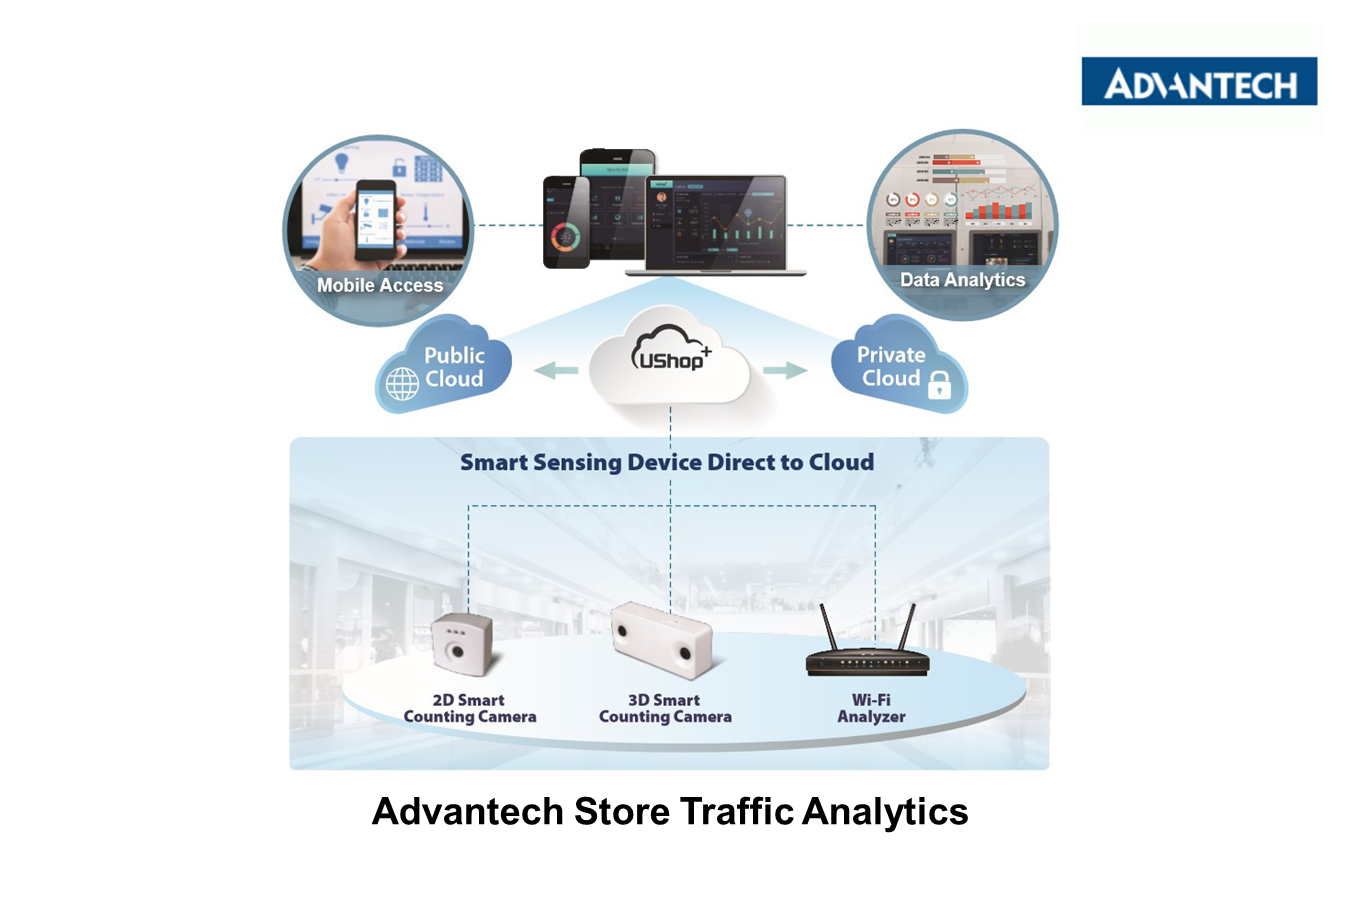 Advantech Store Traffic Analytics